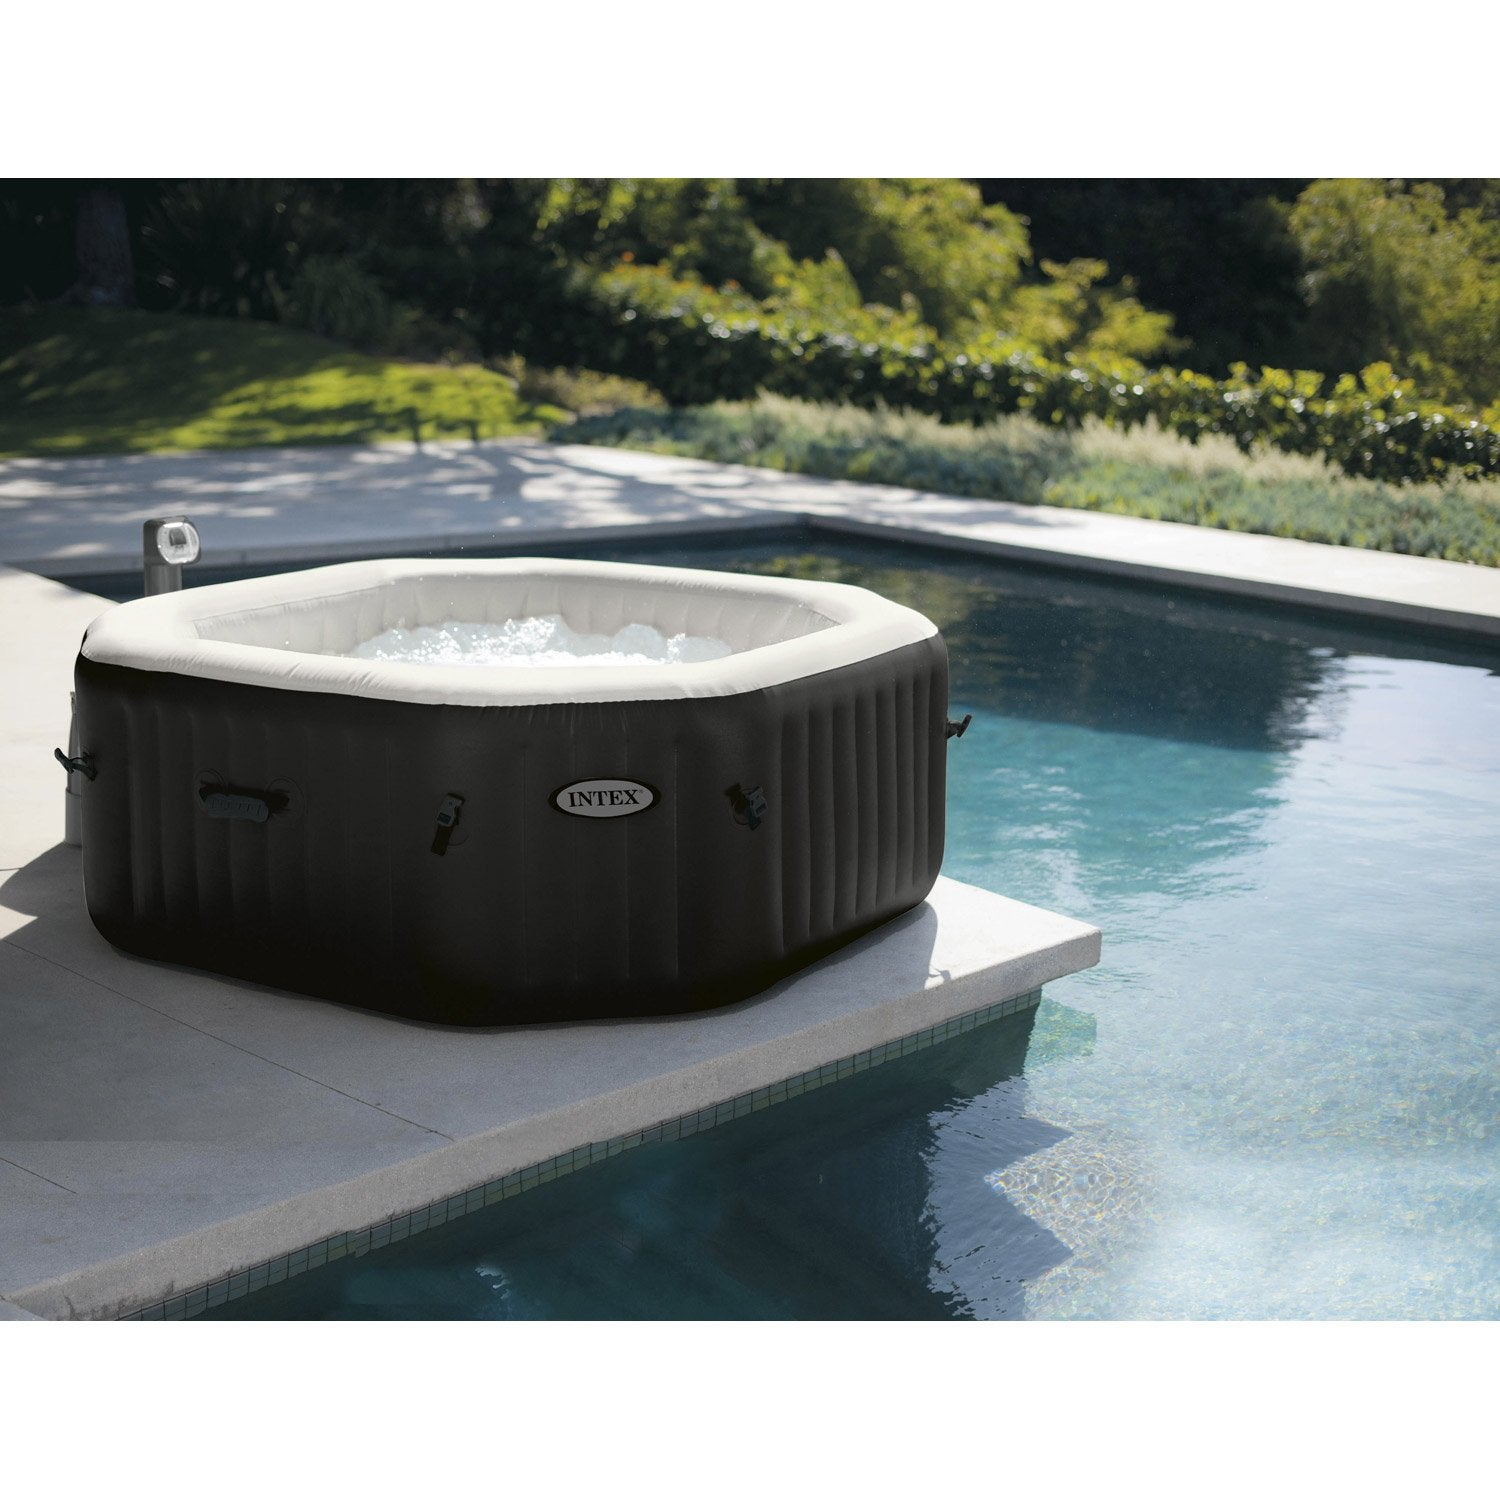 Spa gonflable intex purespa bulles octogonale 6 places for Prix jacuzzi exterieur 4 places